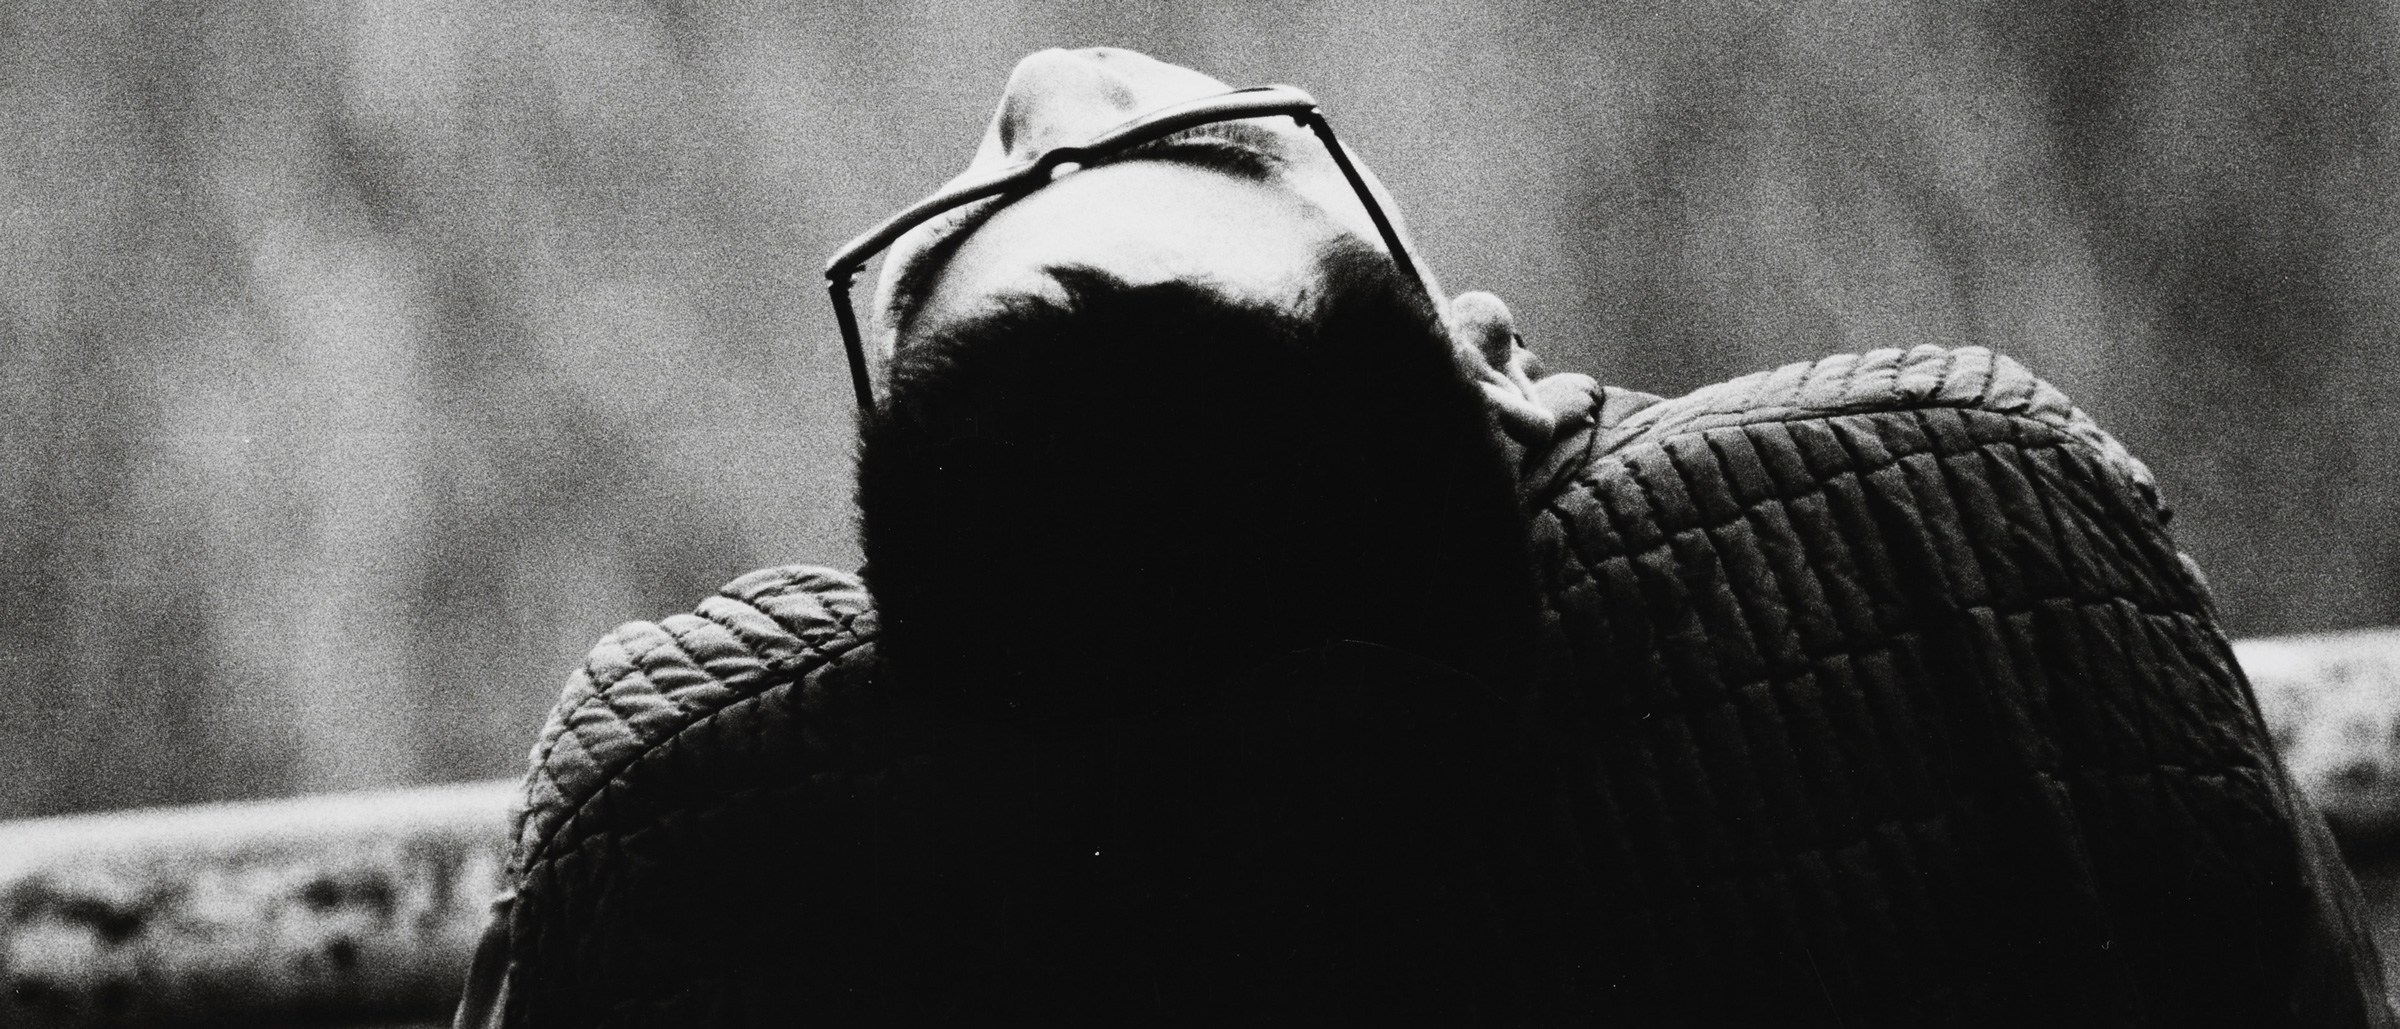 detail, Ueno Park, Tokyo, from the series, Cries, at Ueno Park, by Suda Issei. Black and white photo of a person seen from behind, wearing glasses and a textured top, leaning back so the top of their head and part of the face can be seen.